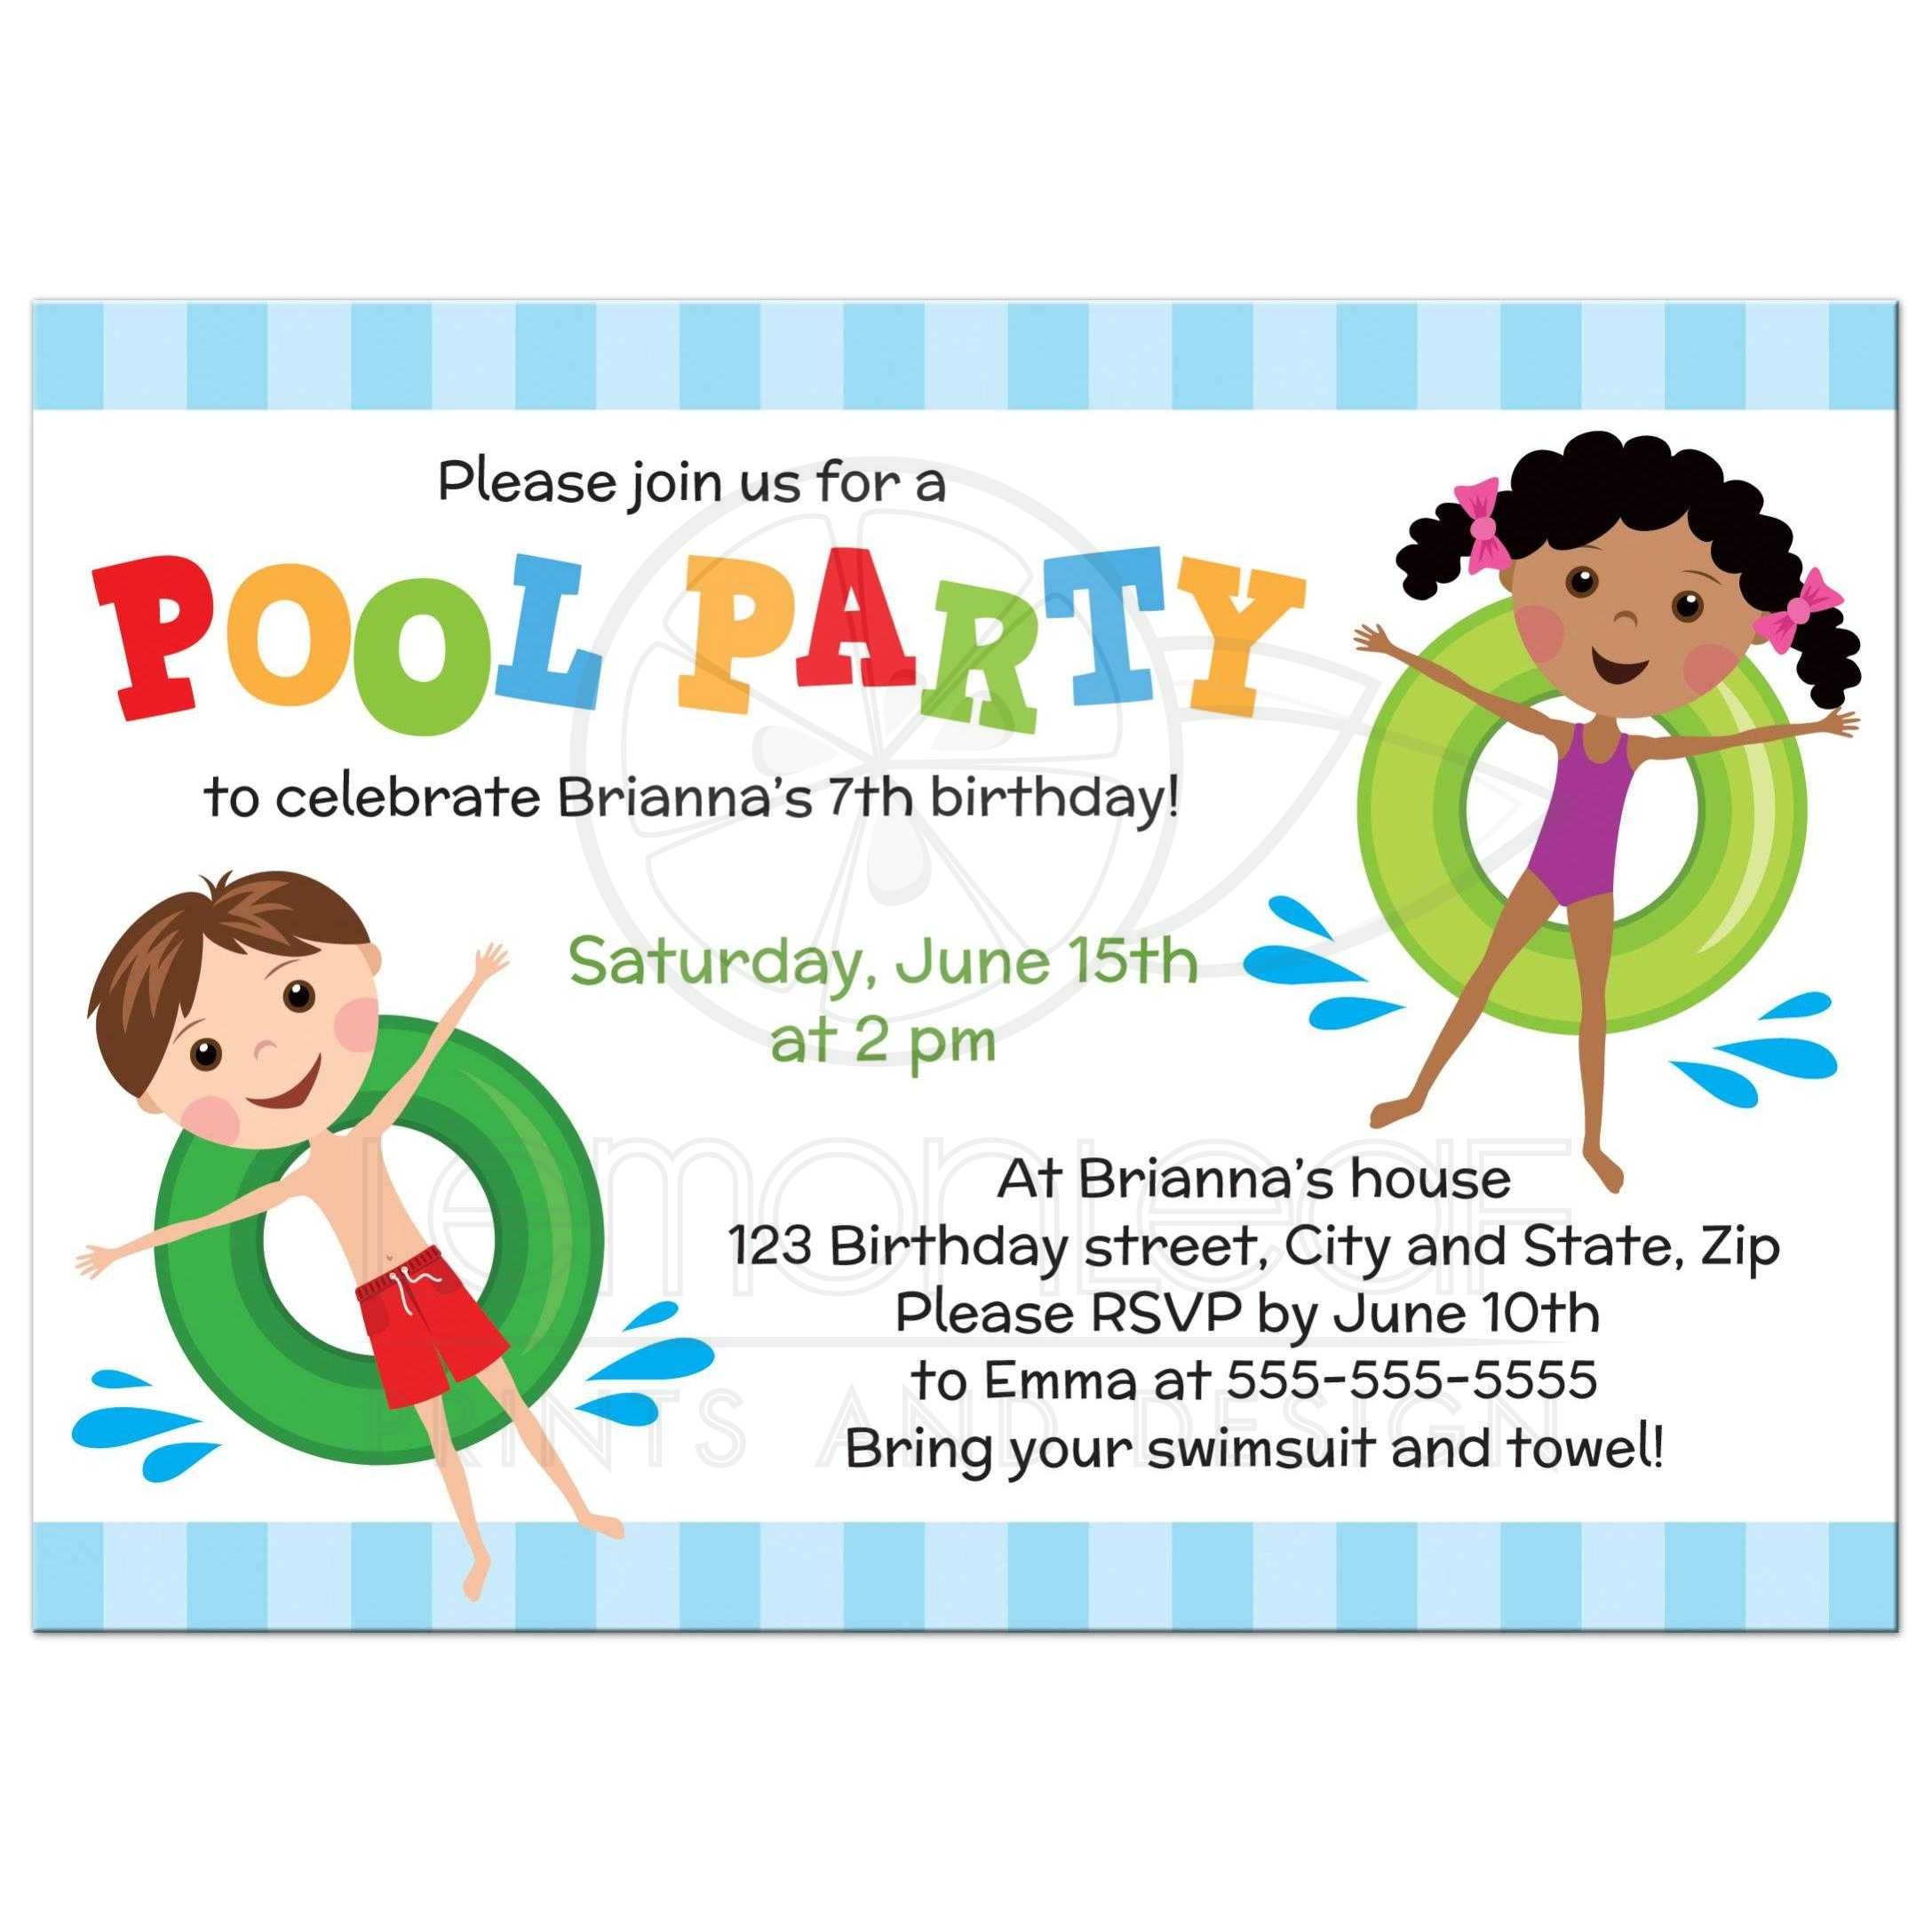 Cute Pool Birthday Party Invite With Mixed Race Kids, One Boy And One Girl,  ...